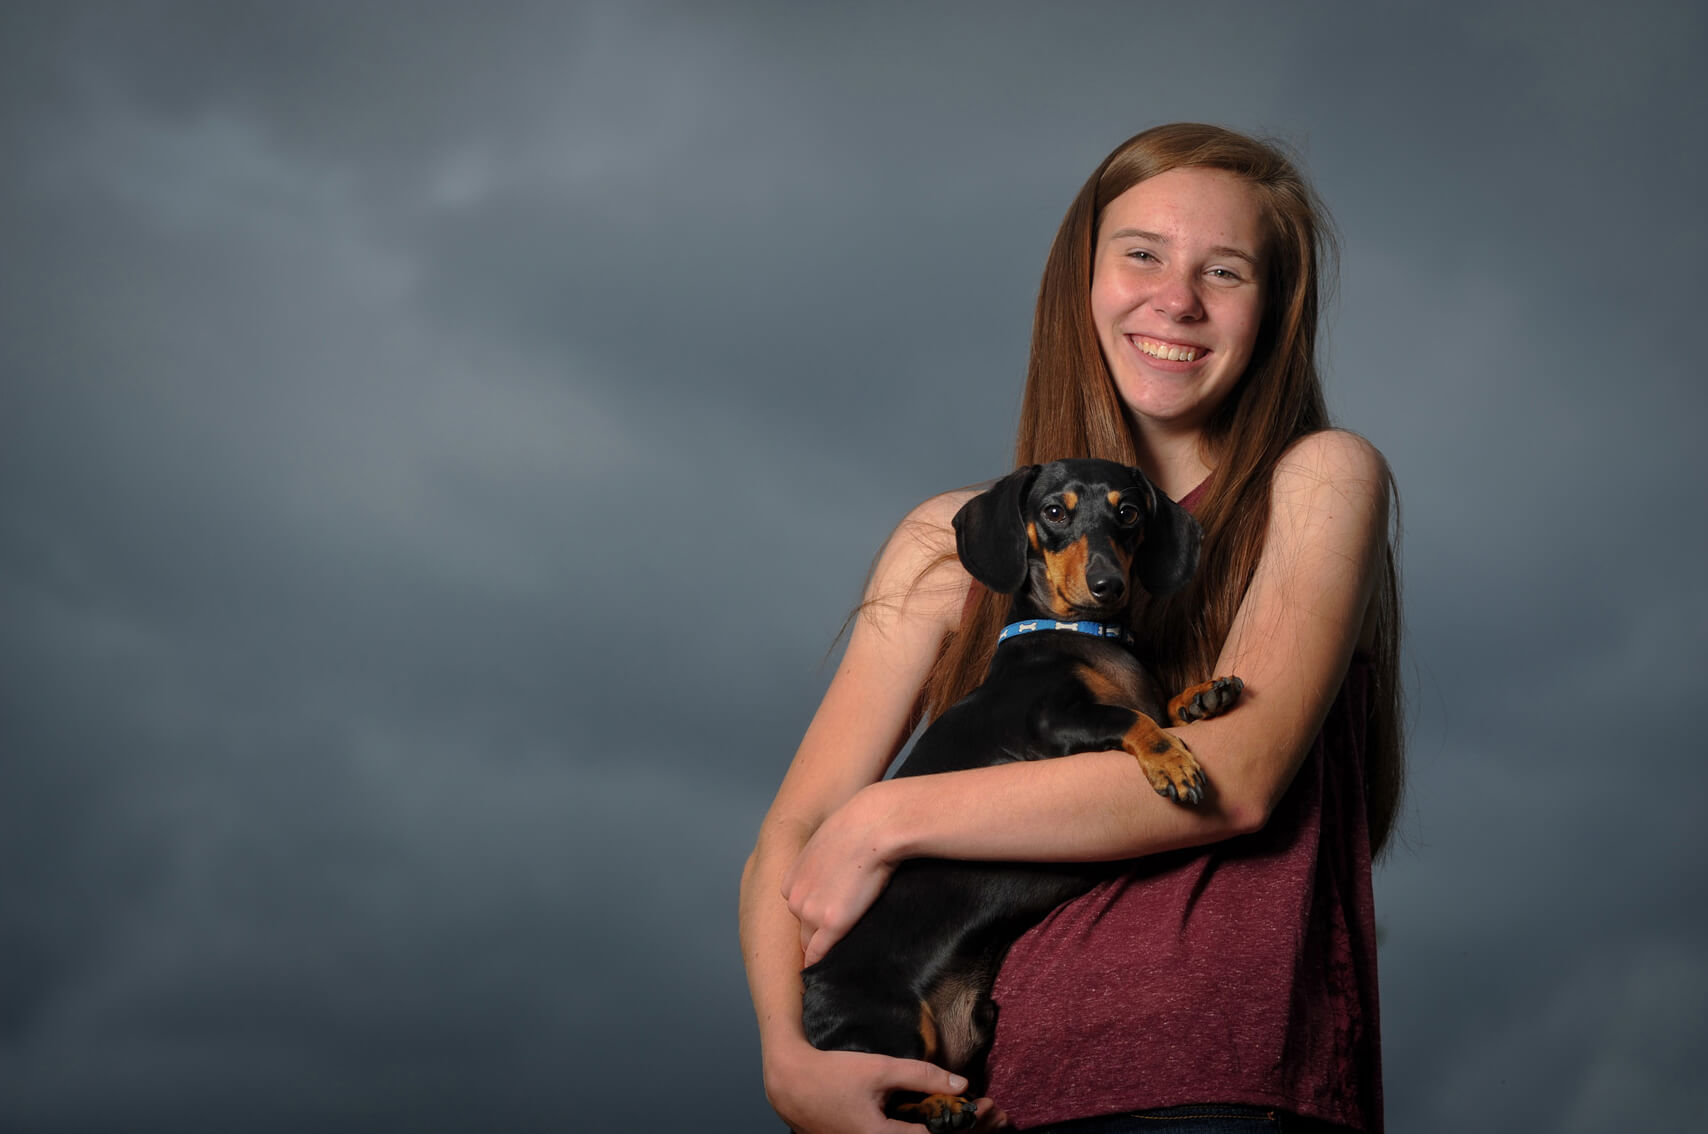 Metro Detroit, Michigan senior photography is all done outdoors, on location which means photographing rain or shine and can create some amazingly dramatic pet photos as well!